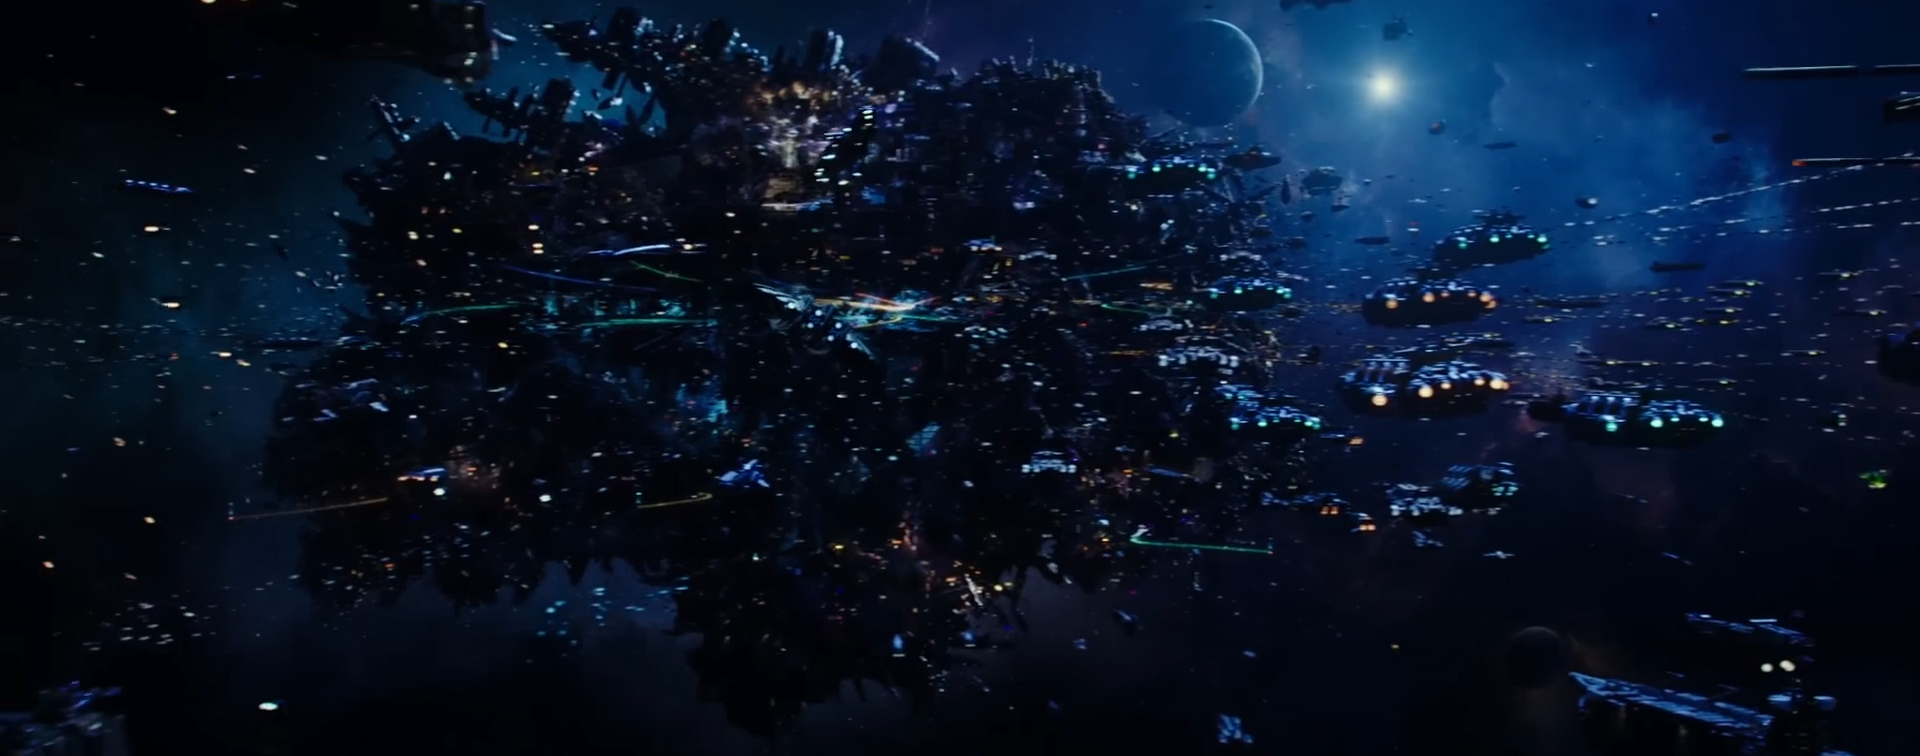 Valerian and the City of a Thousand Planets (Valérian et la Cité des mille planètes). Image Credit: STX Entertainment.